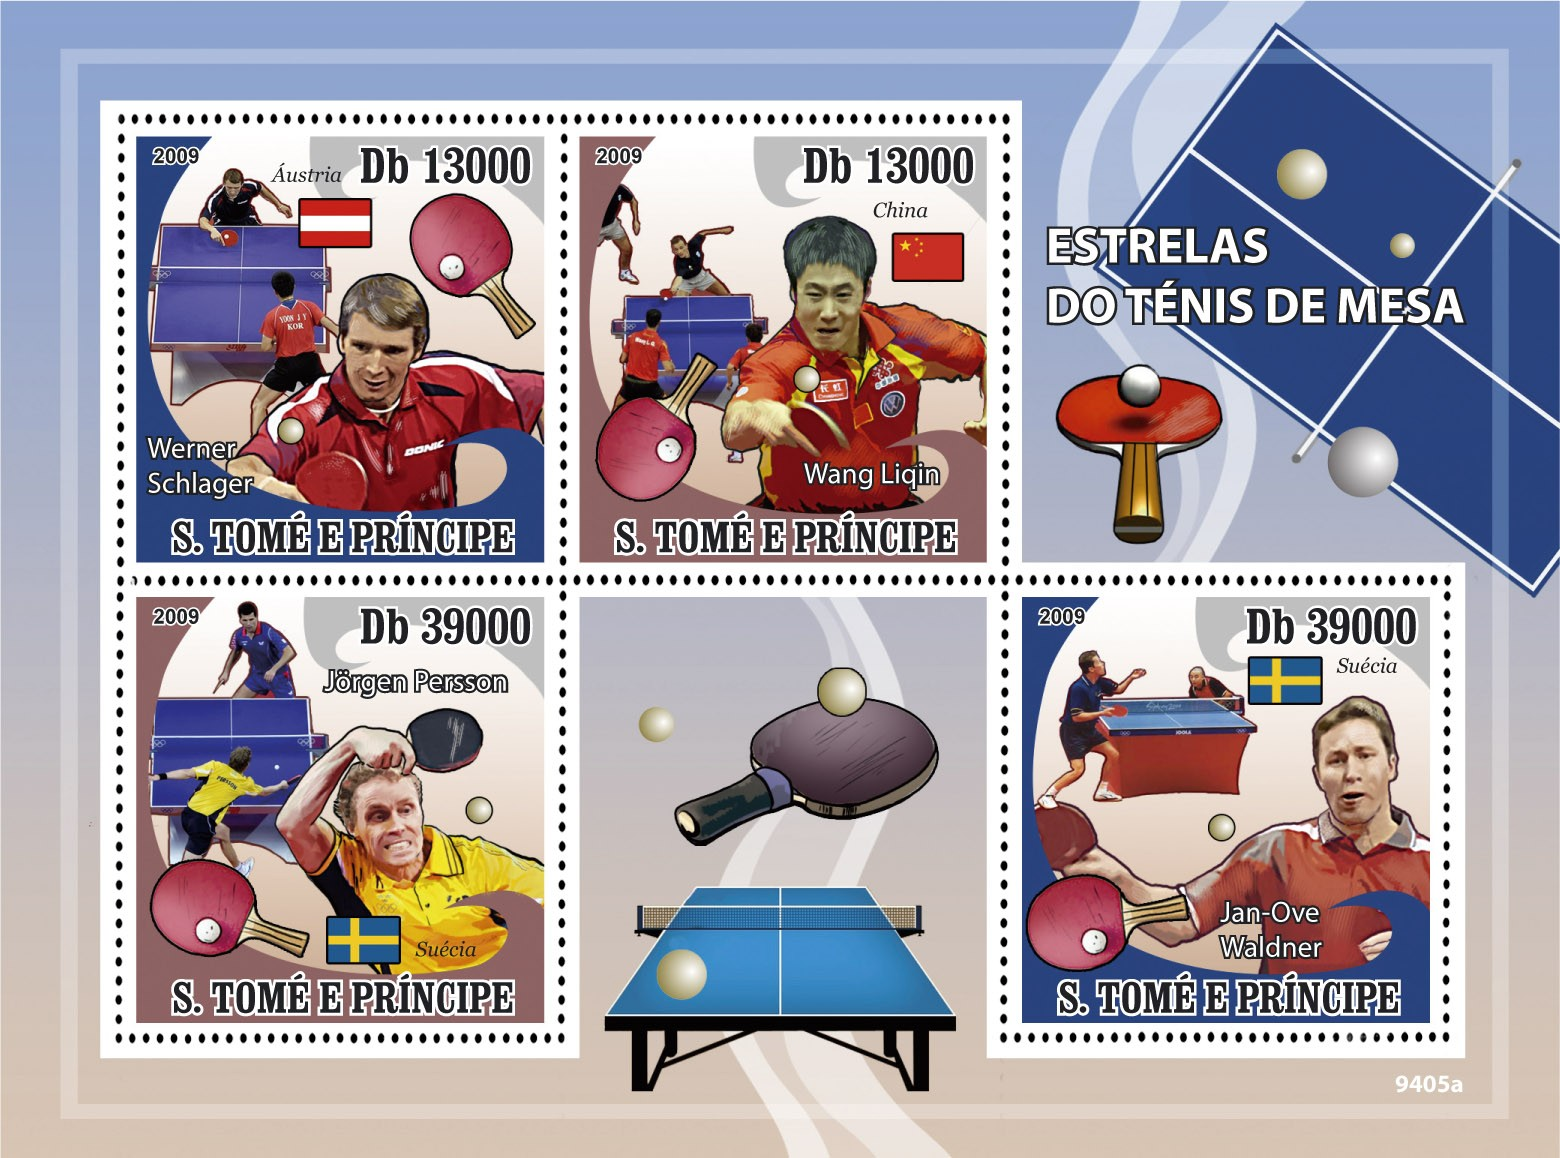 Ping Pong Stars  W.Schlager, W.Liqin, J.Persson, J.O.Waldner - Issue of Sao Tome and Principe postage stamps